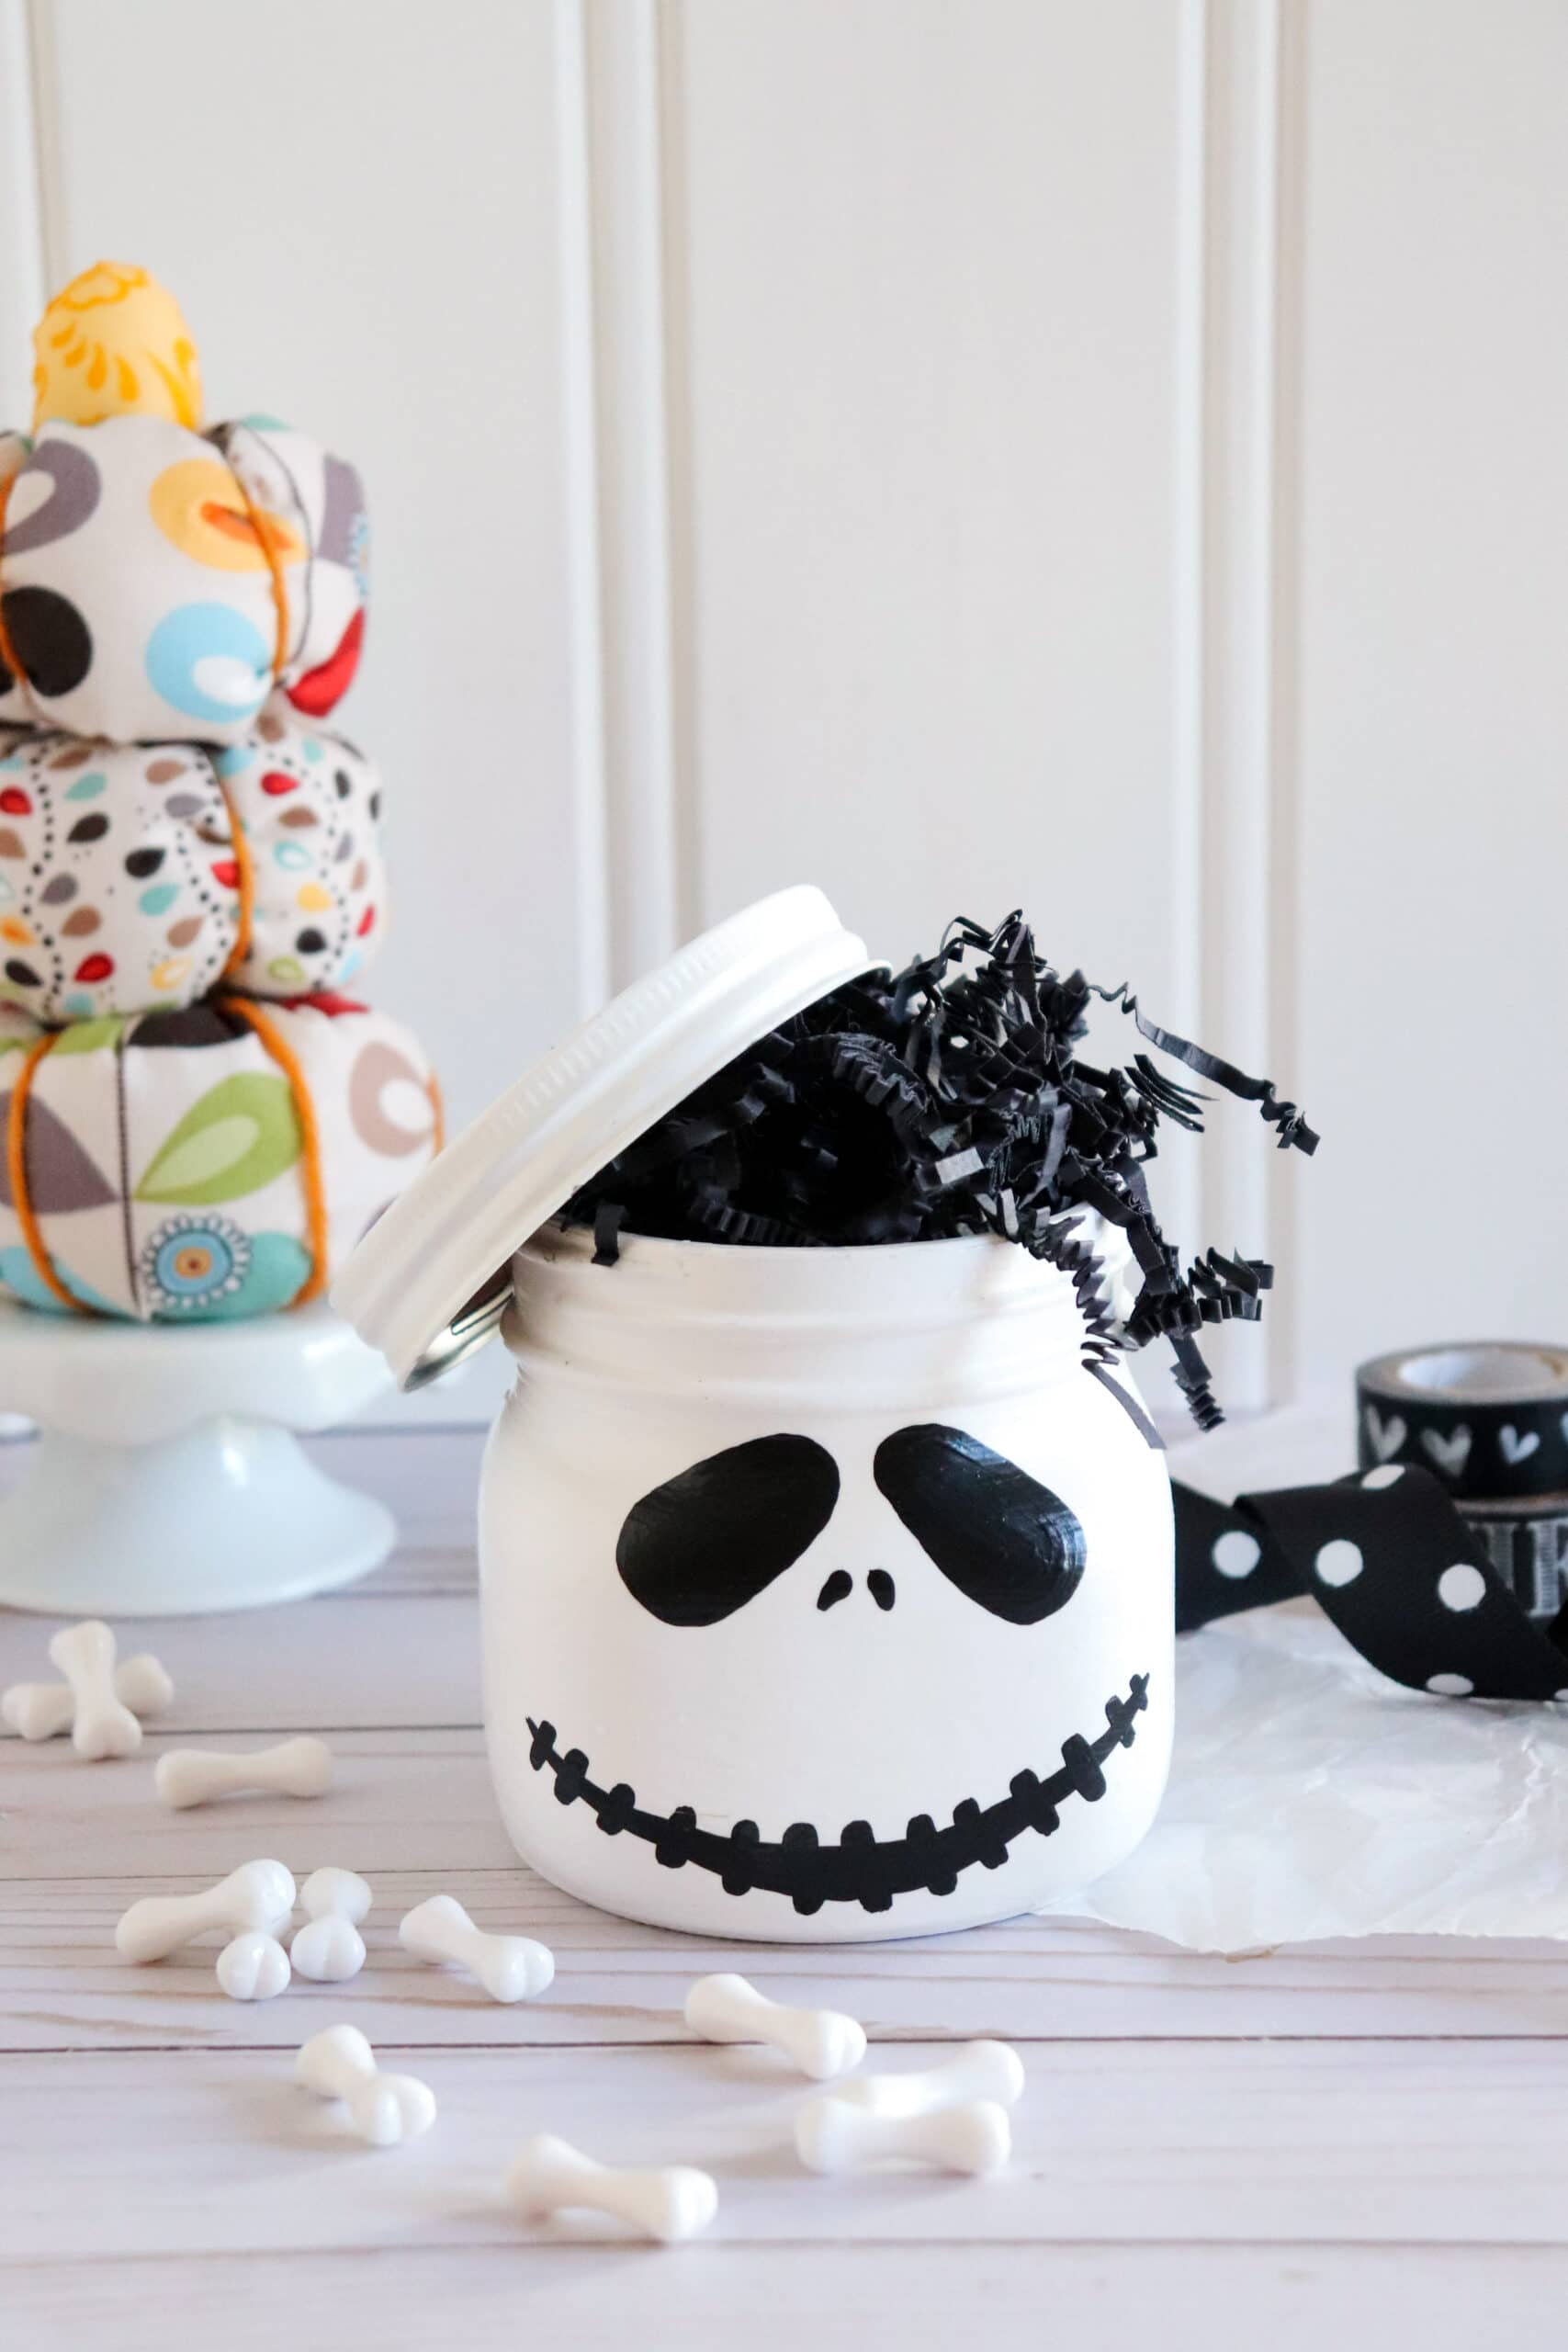 Jack Skellington Mason Jar. This Jack Skellington Mason Jar Halloween Craft is the perfect way to creep your way into the Halloween season. Fill it with your favorite candies and treats, it's the perfect Halloween Craft that you can keep or gift.